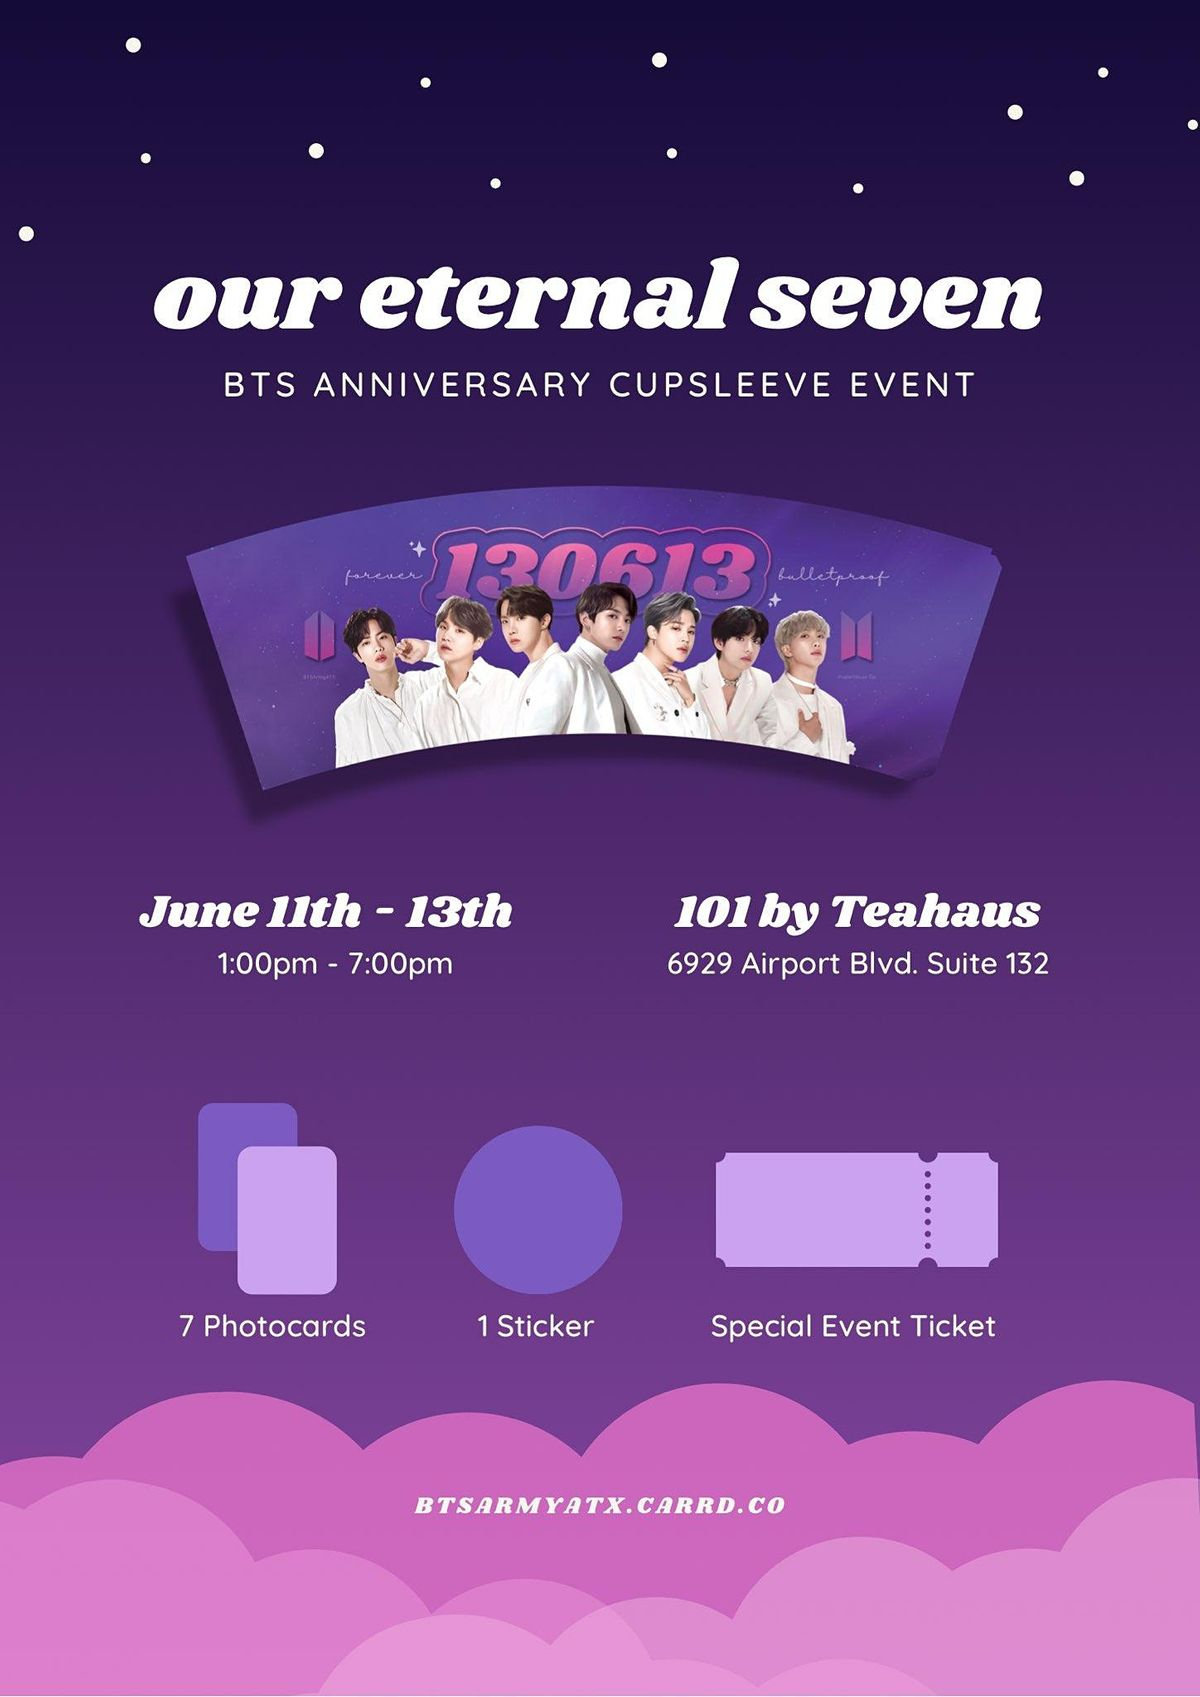 OUR ETERNAL SEVEN | BTS 8TH ANNIVERSARY CUPSLEEVE EVENT